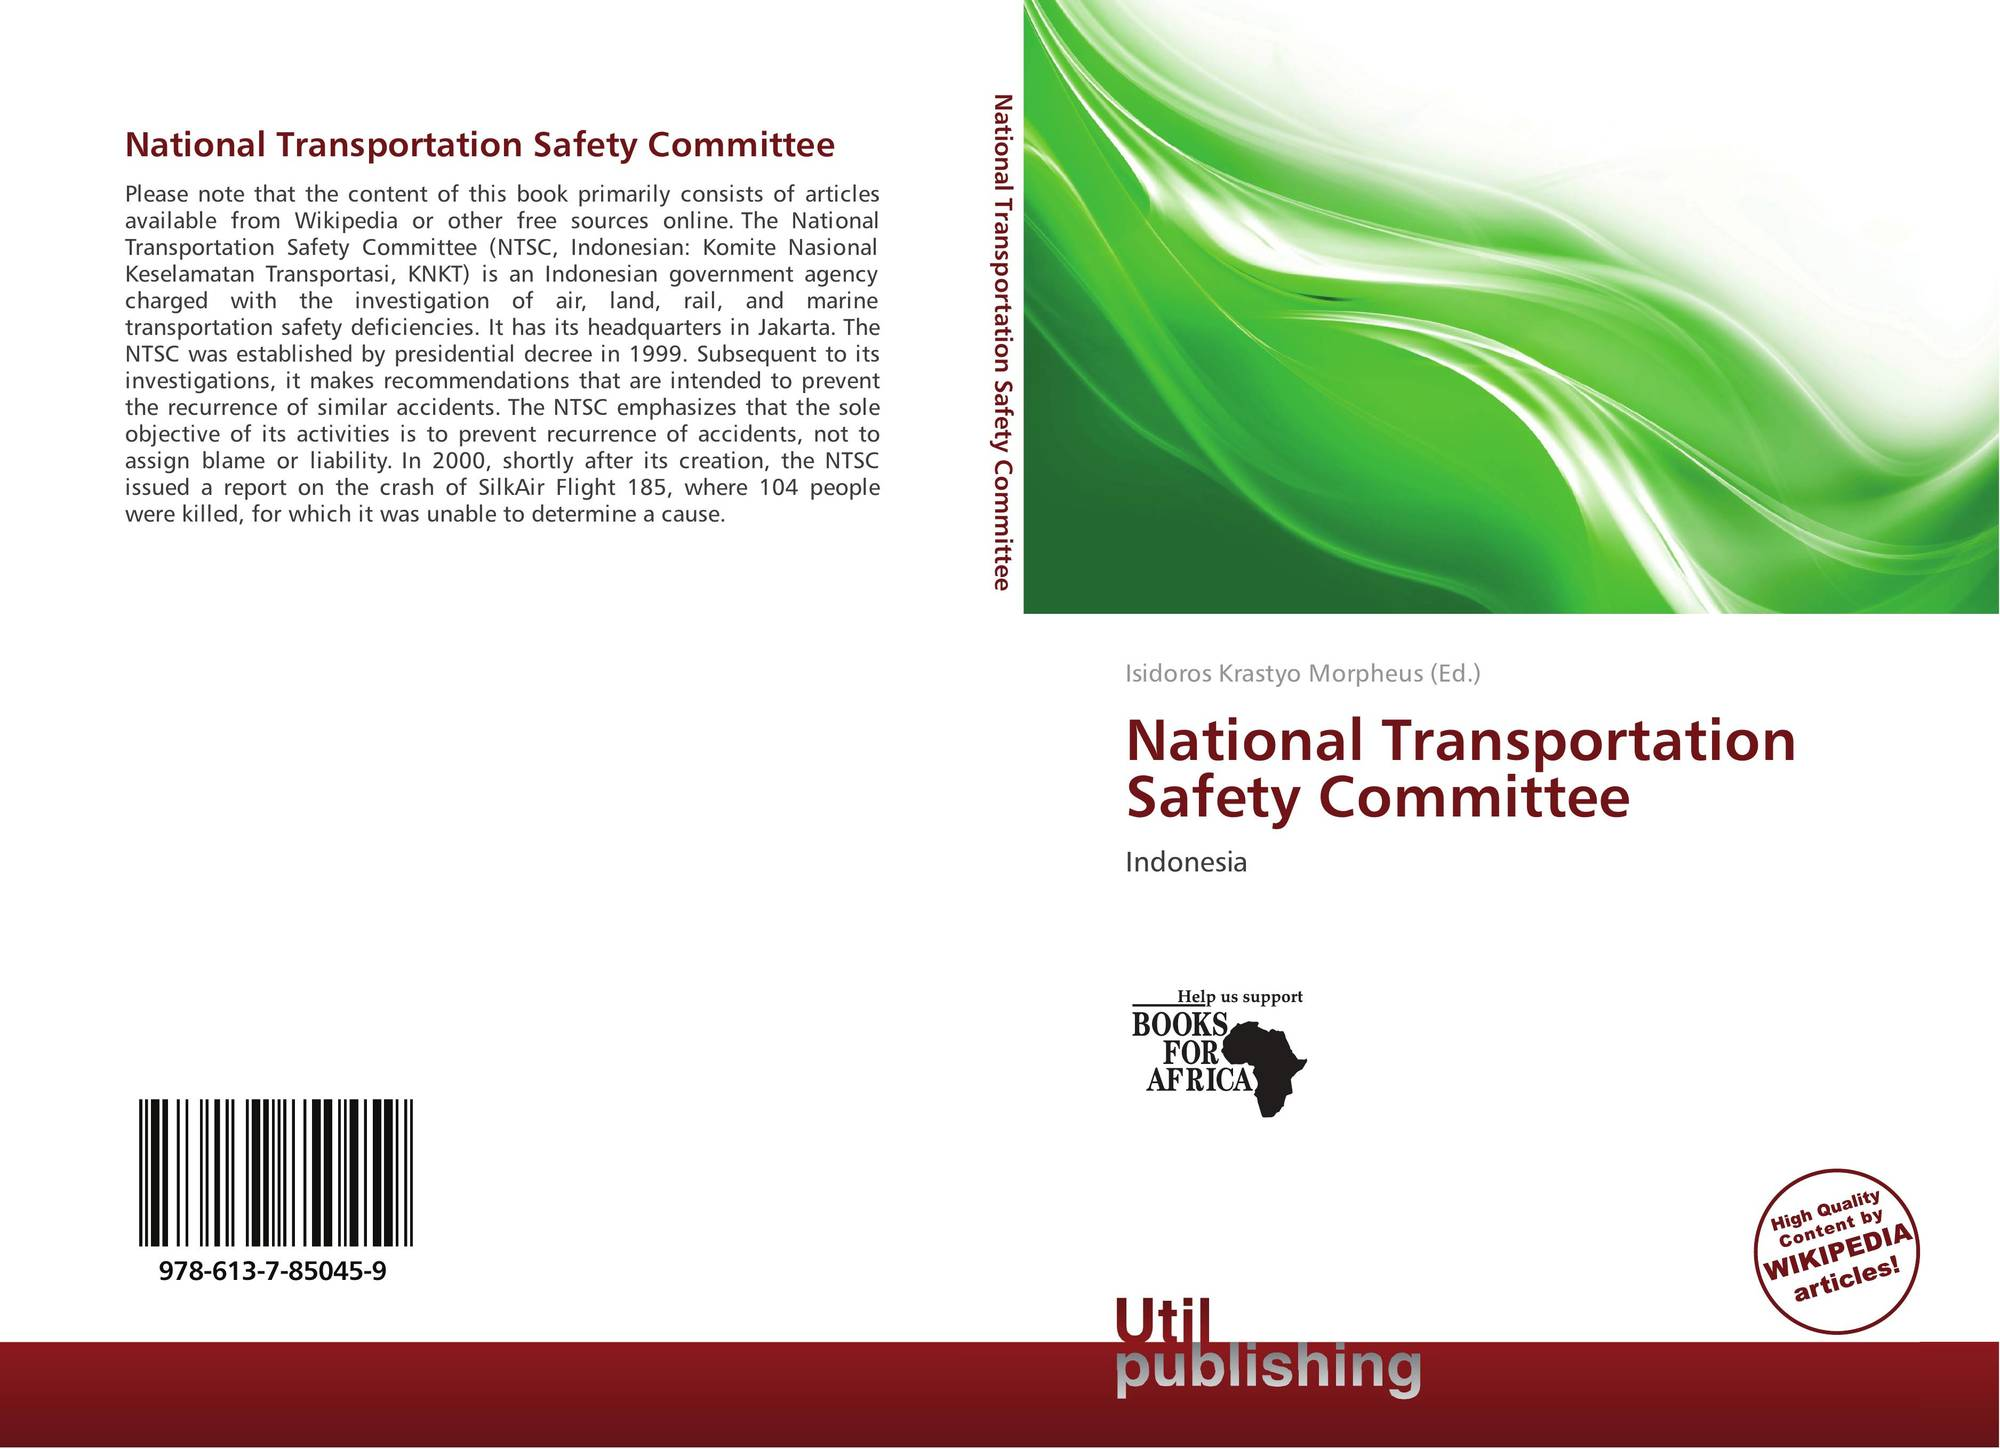 an analysis of the national transportation board Vandenbossche, j m performance analysis of ultrathin whitetopping intersections on us-169, elk river, minnesota in transportation research record: journal of the.